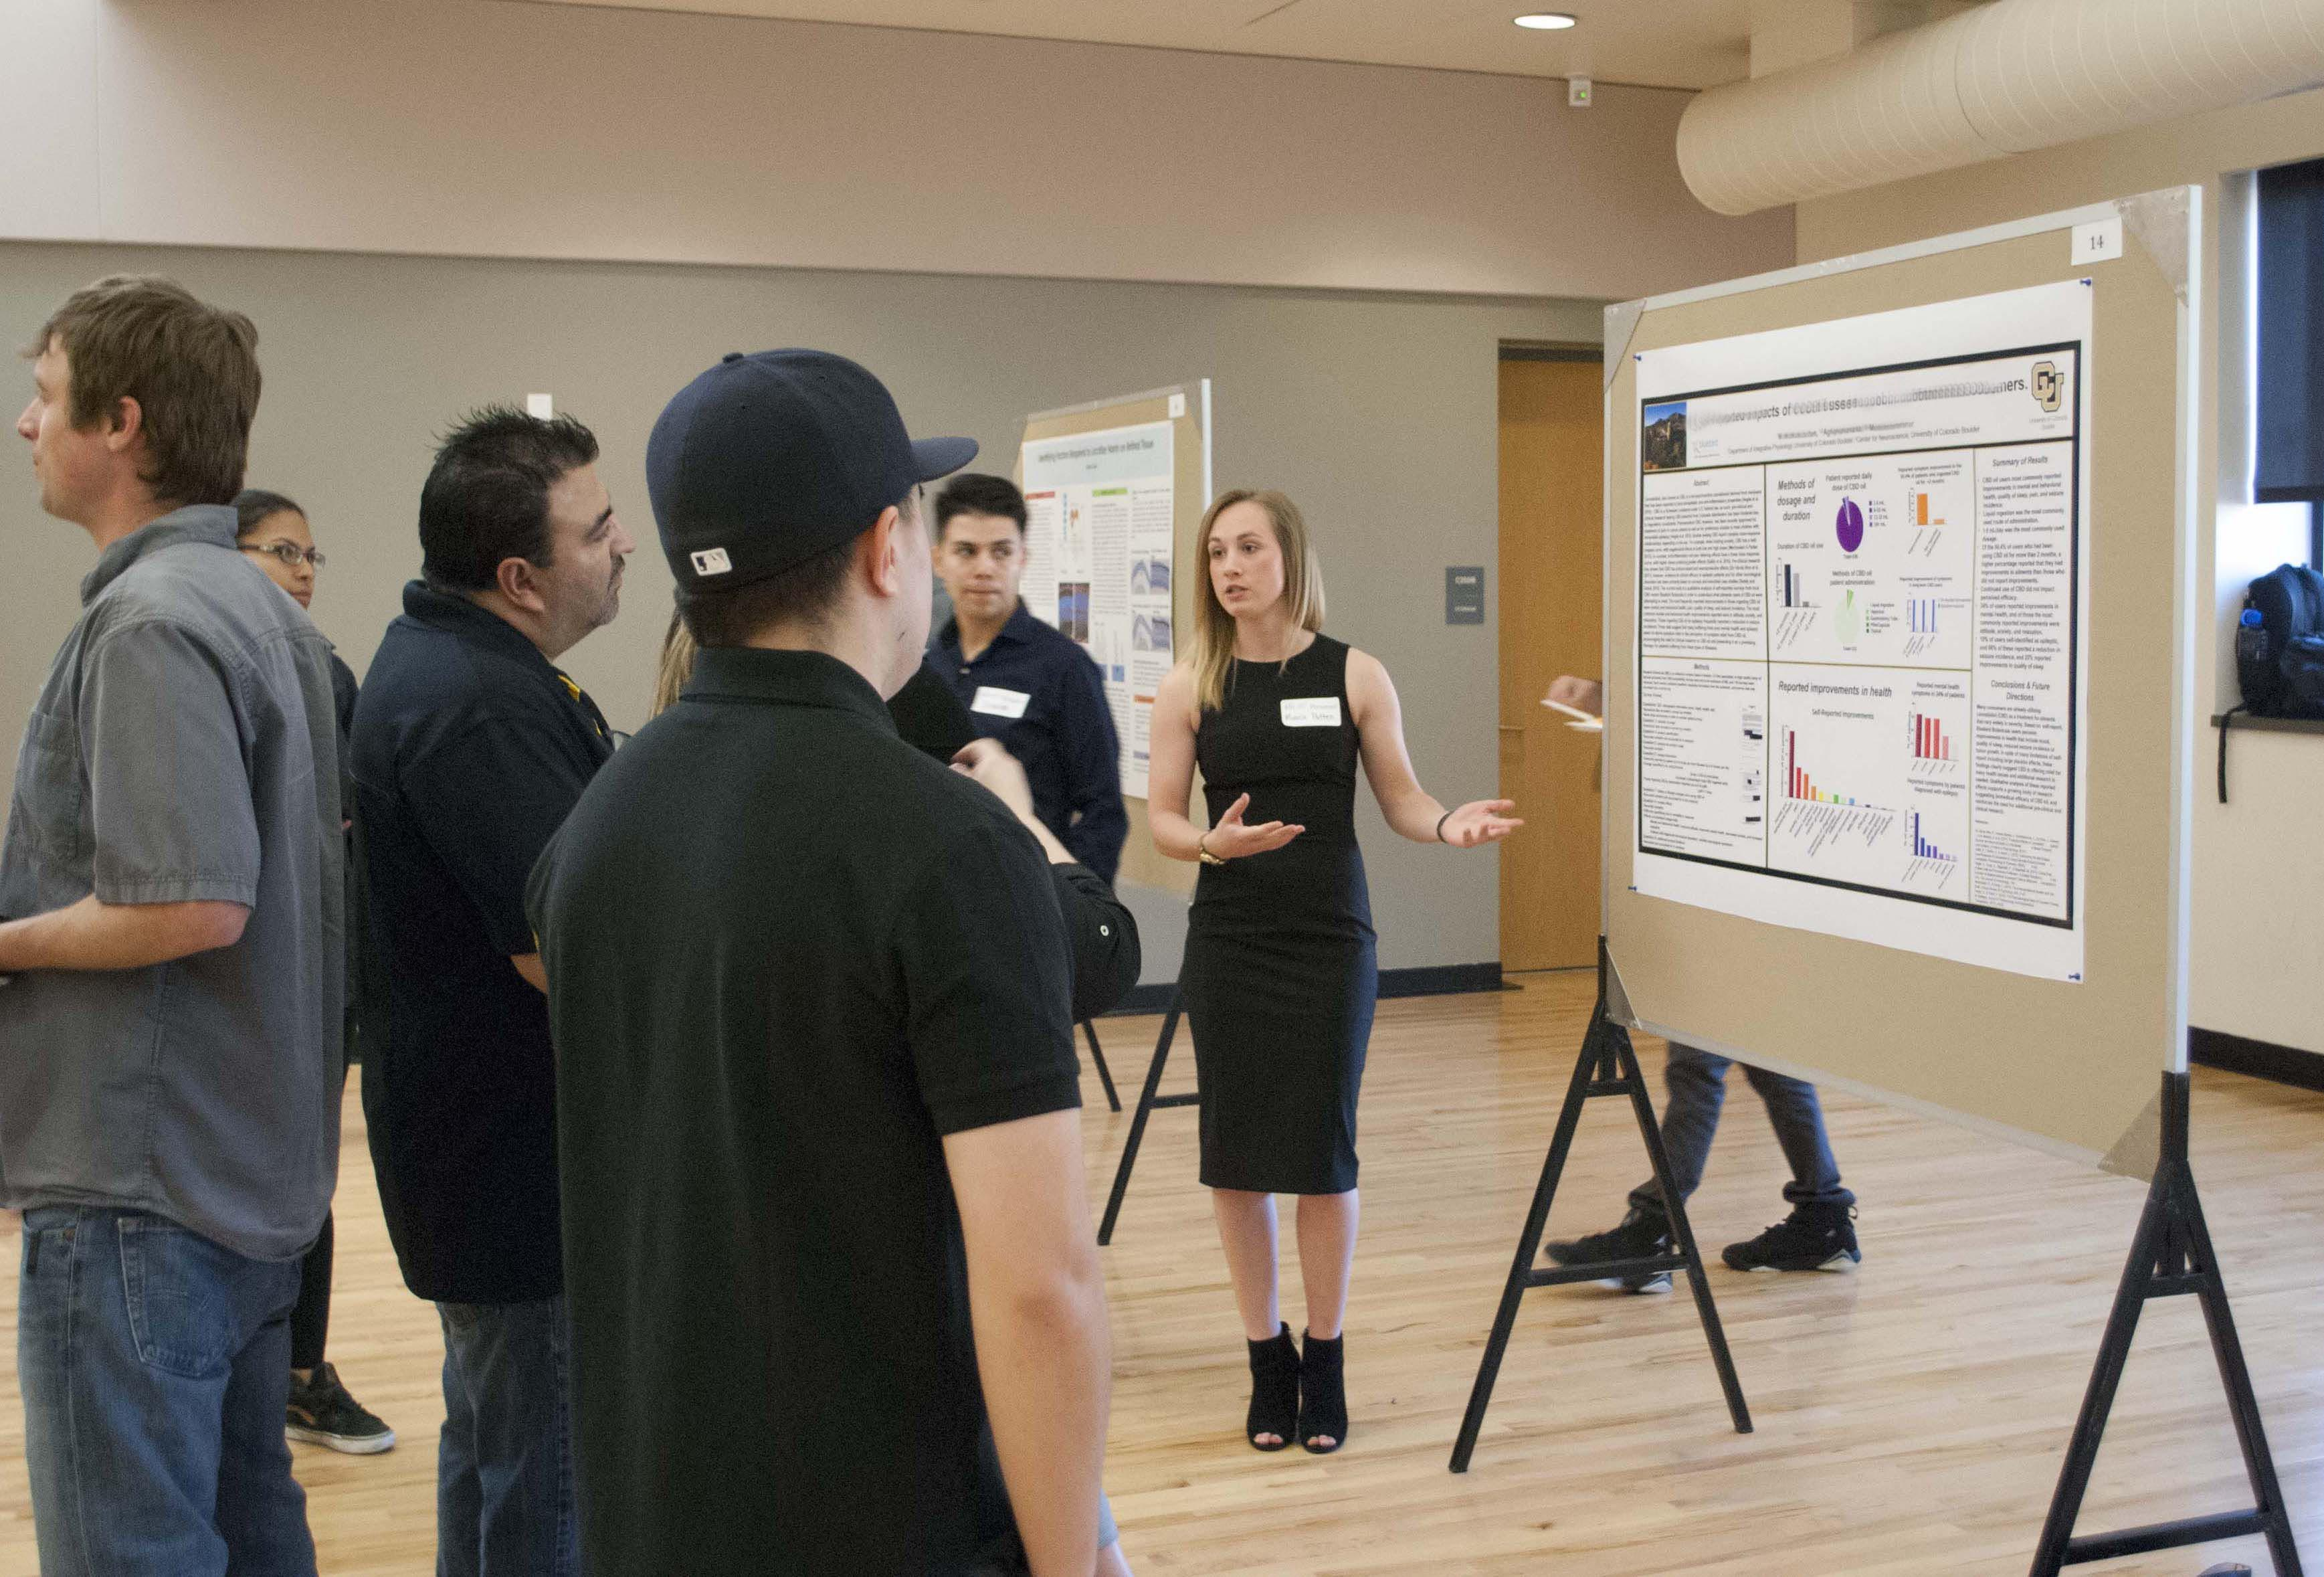 Visitors at the annual BSI Scholars Poster Symposium